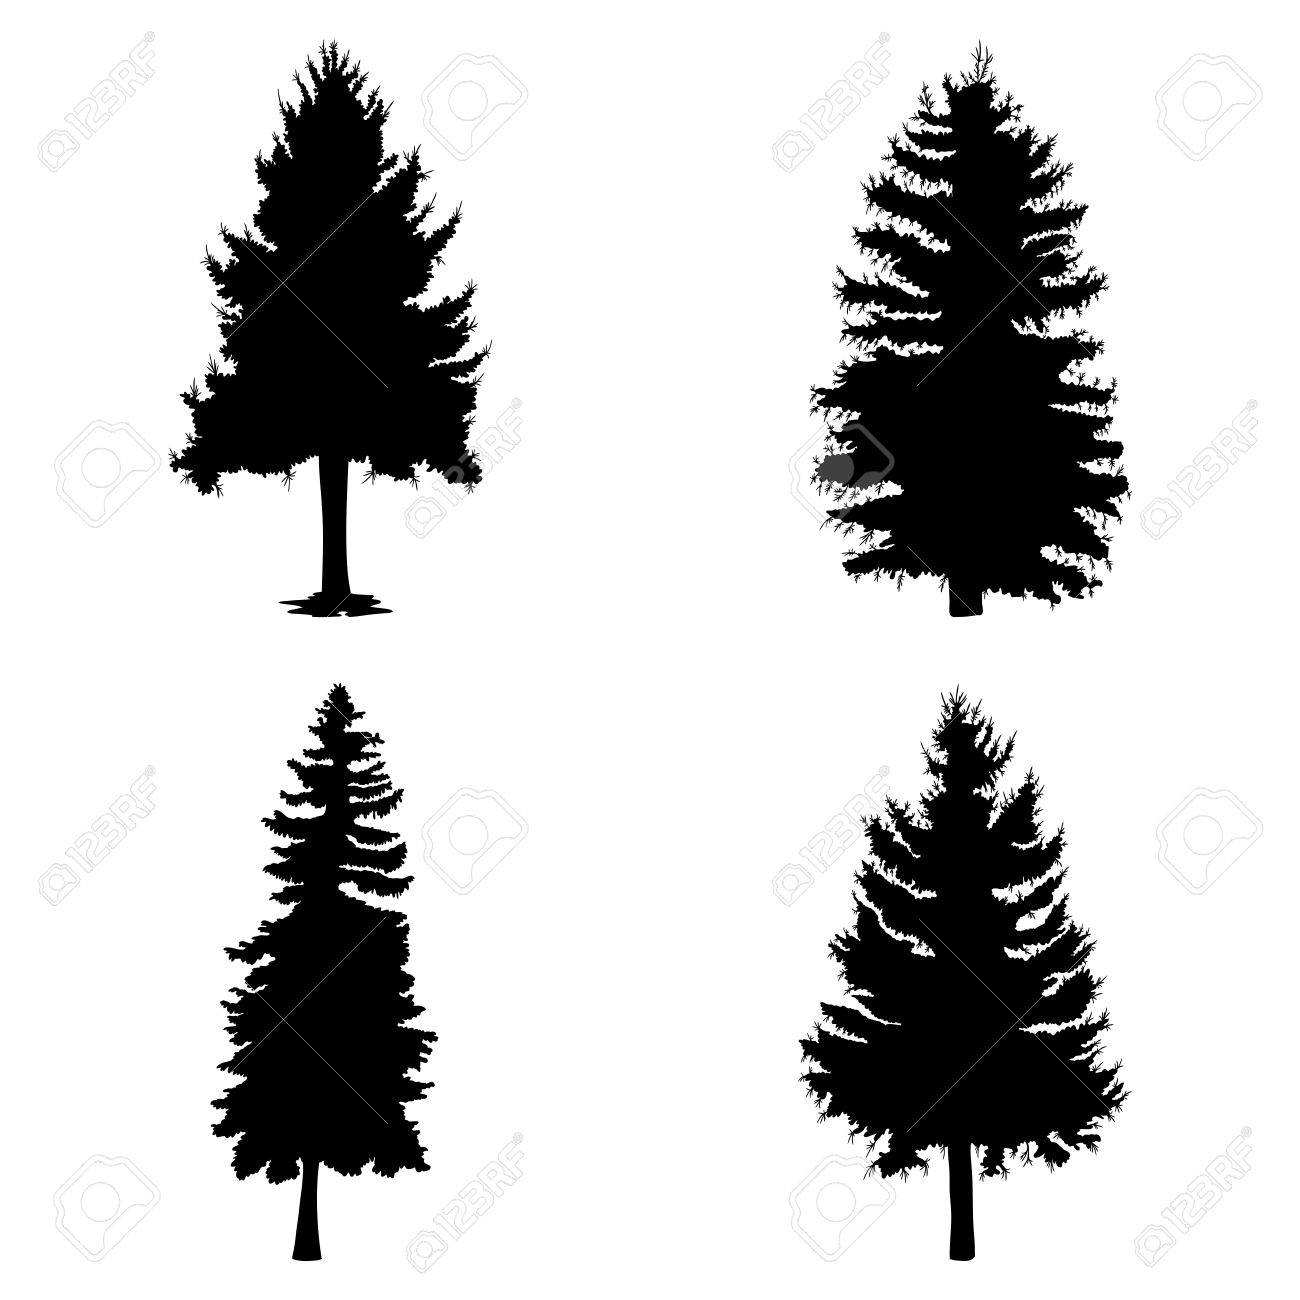 Fir trees set isolated on white background illustration. Collection of black coniferous trees silhouettes. Hand drawing. - 67981390